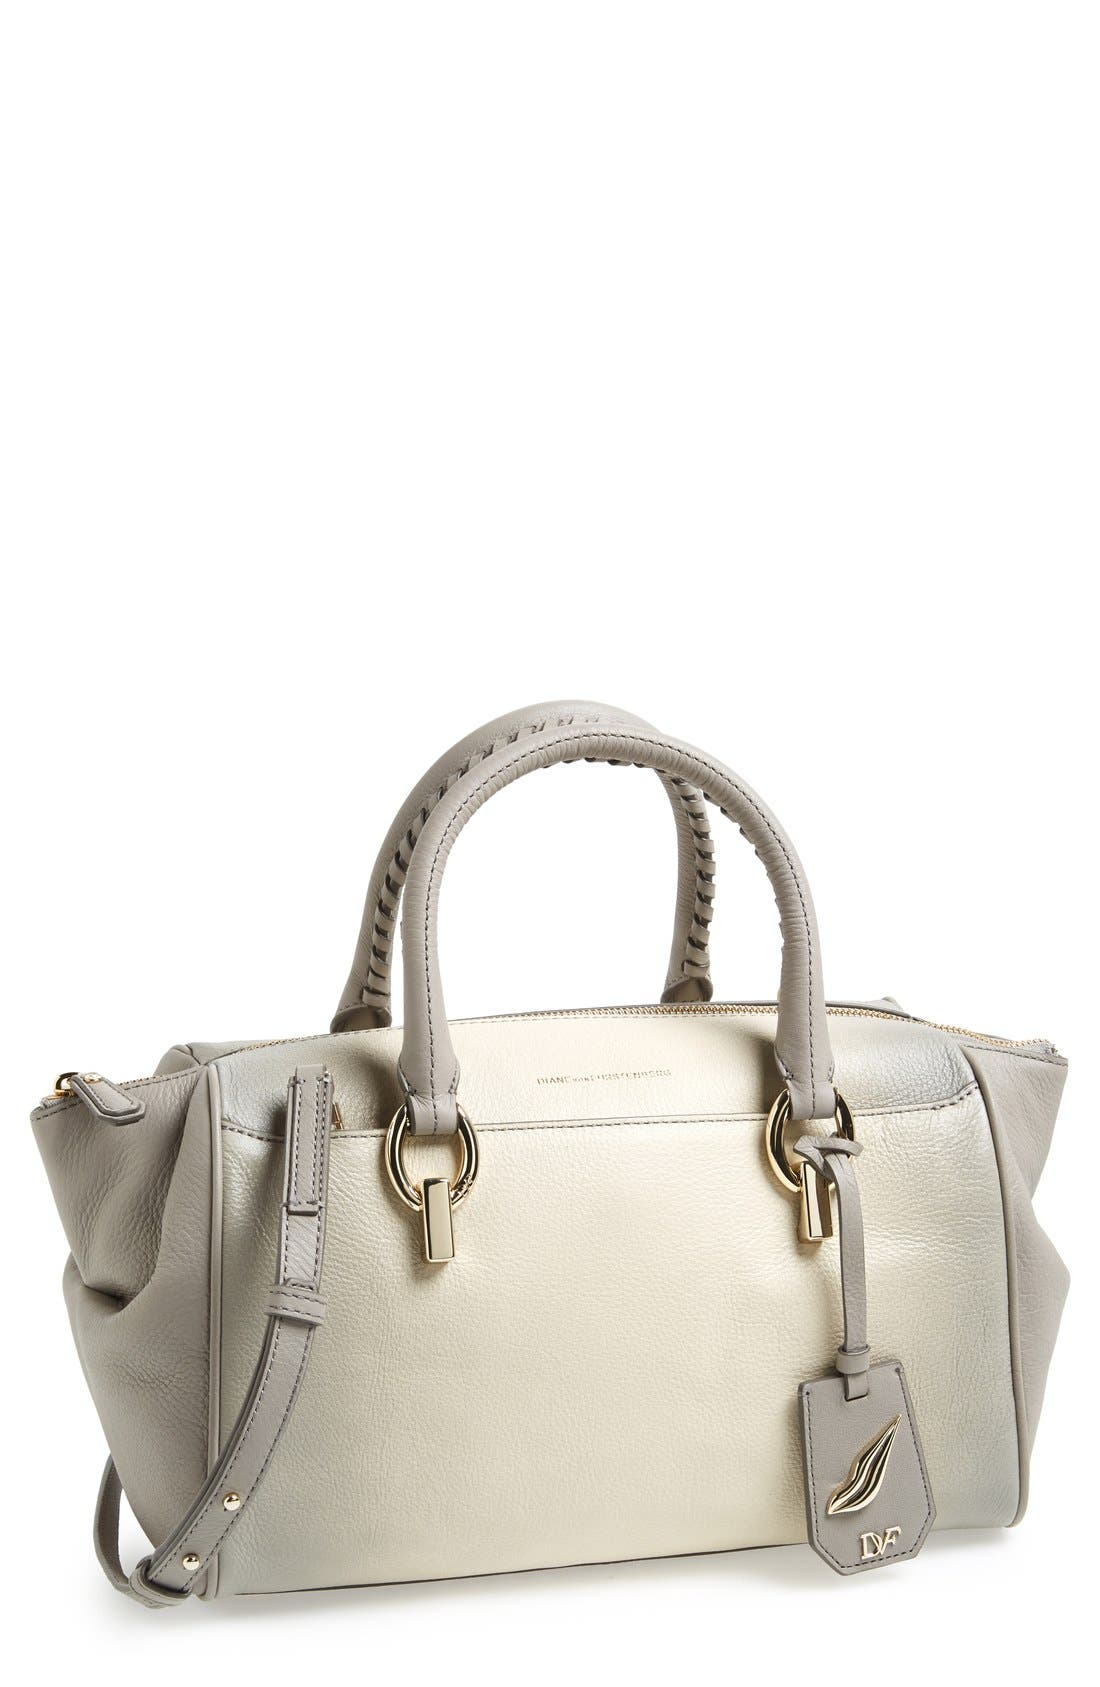 Alternate Image 1 Selected - Diane von Furstenberg 'Small Sutra' Leather Duffel